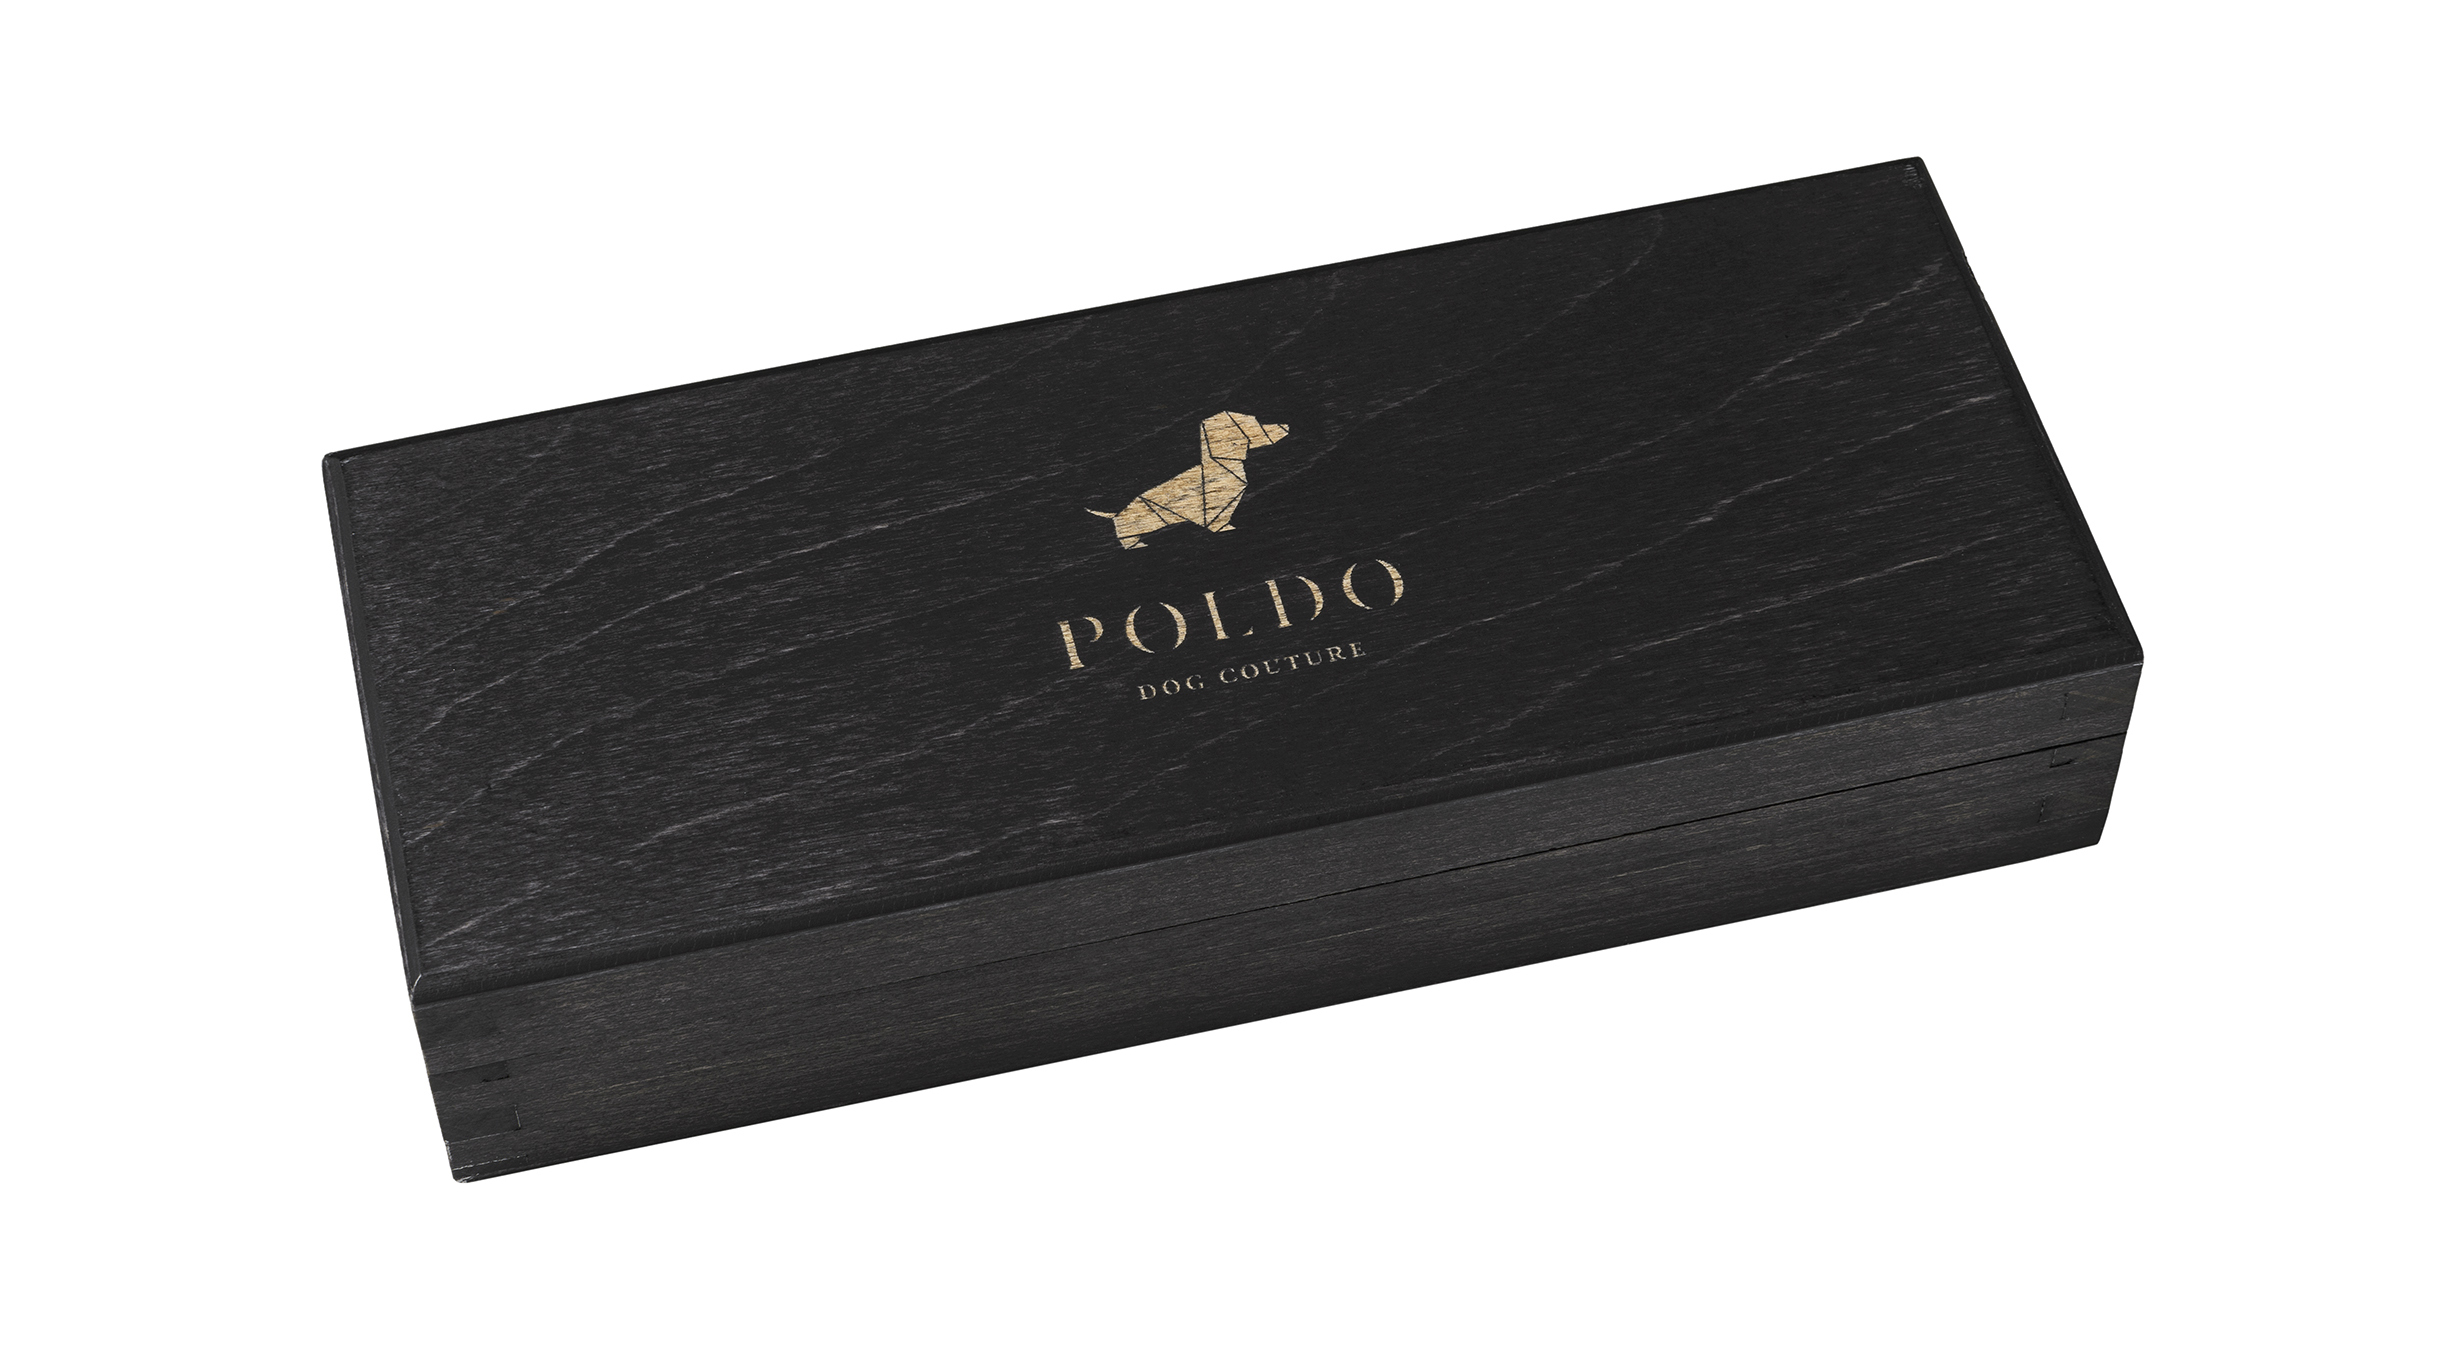 poldo dog couture playing cards set